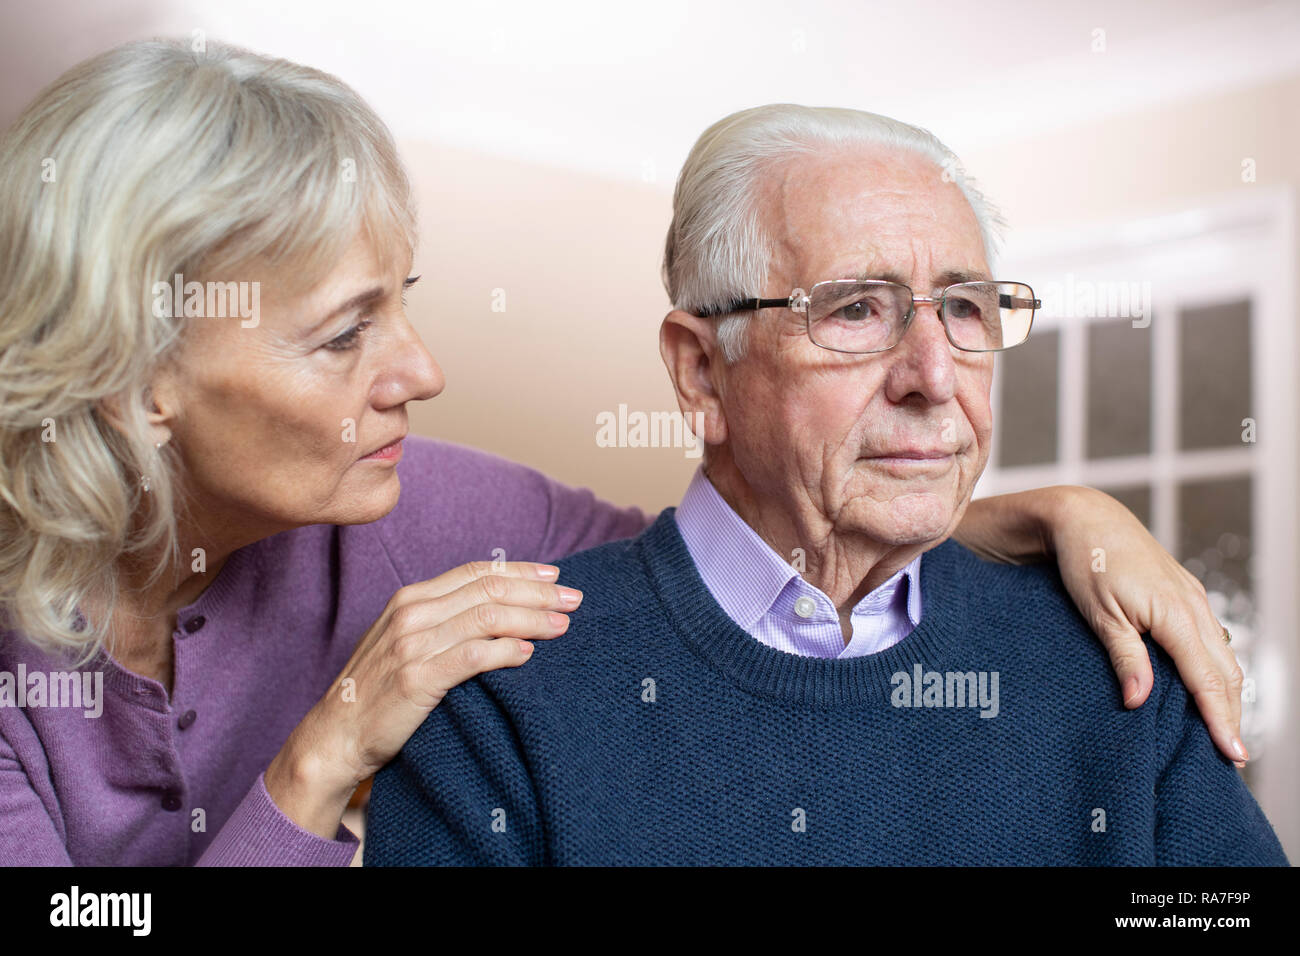 Confused Senior Man Suffering With Depression And Dementia Being Comforted By Wife Stock Photo